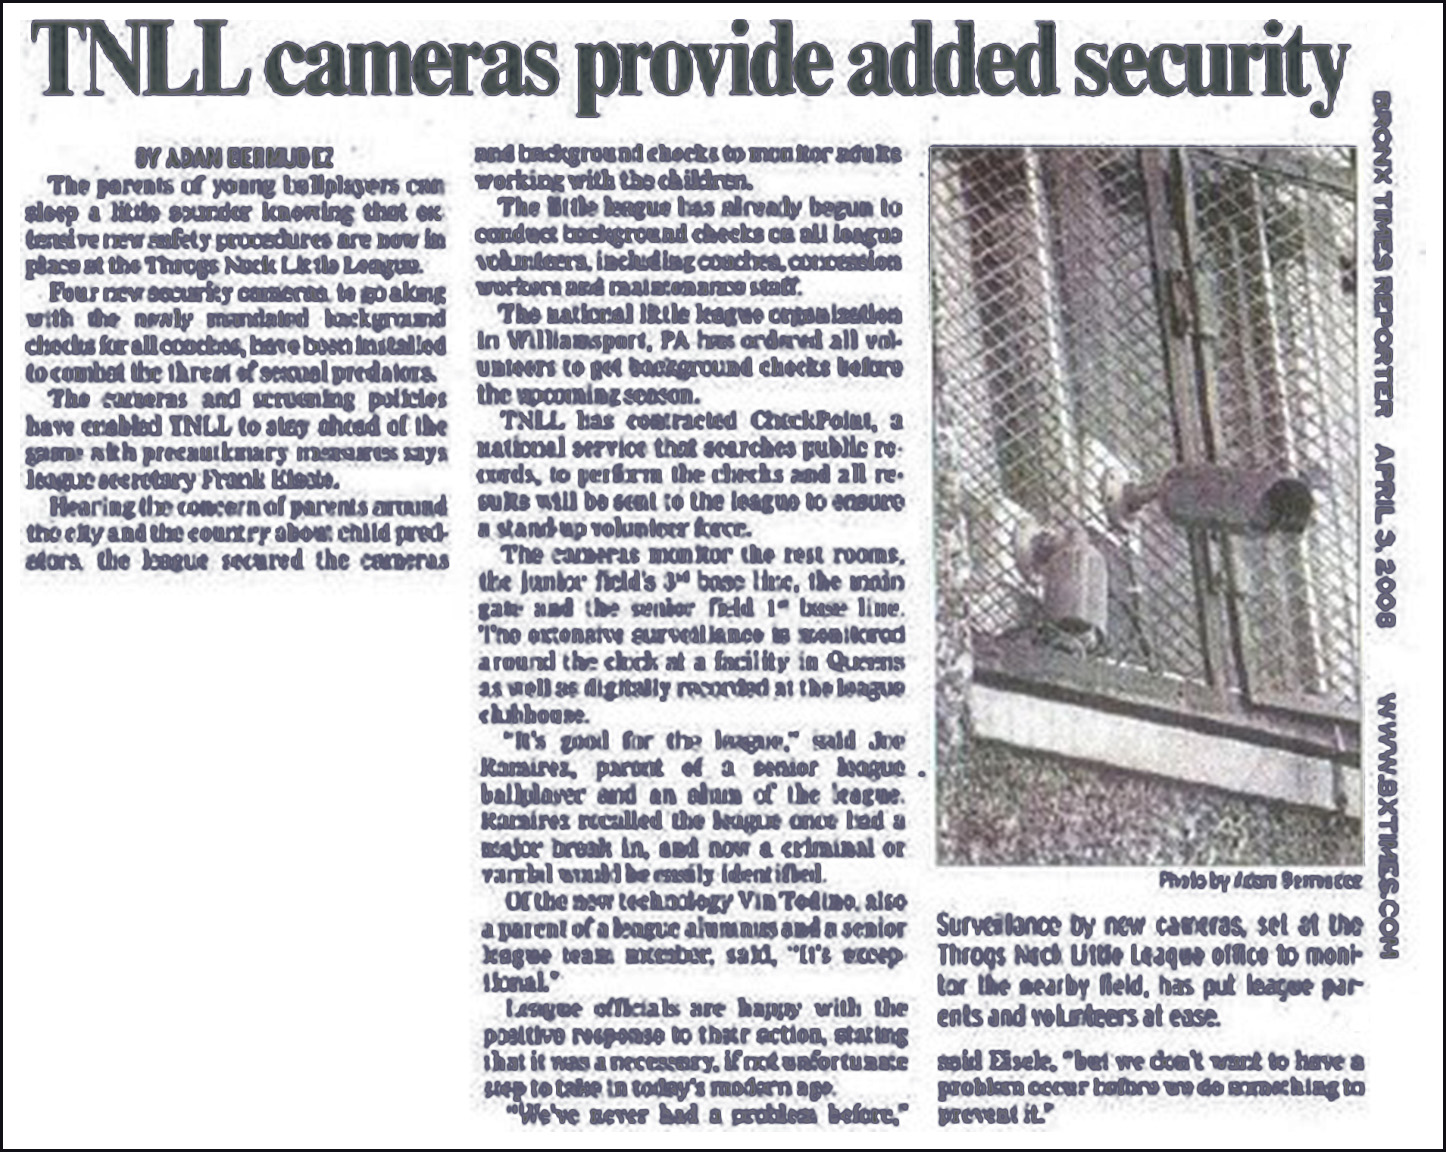 Throgs Neck Little League Cameras Provide Added Security